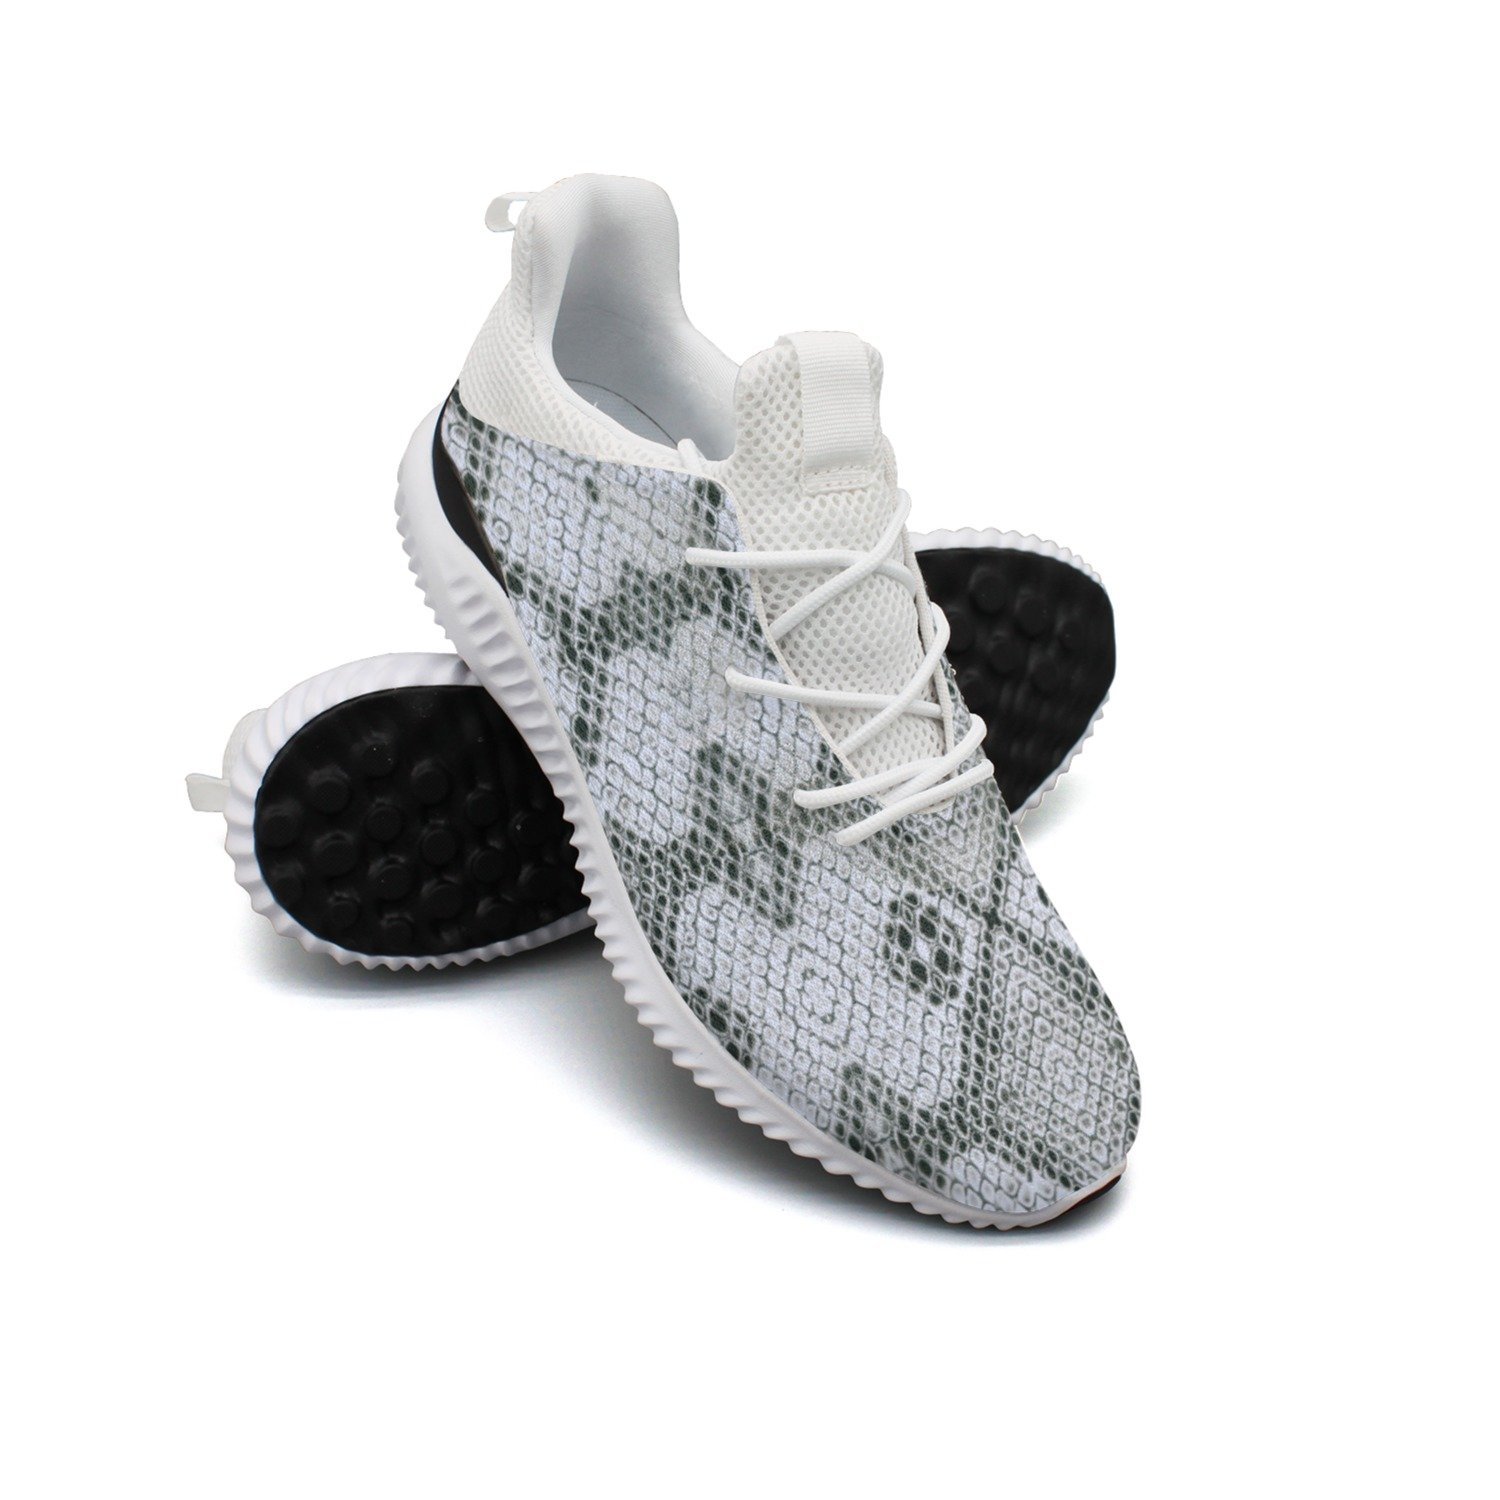 White Snake Skin Leisure Design Running Shoes Women's Net Jogger Colorful